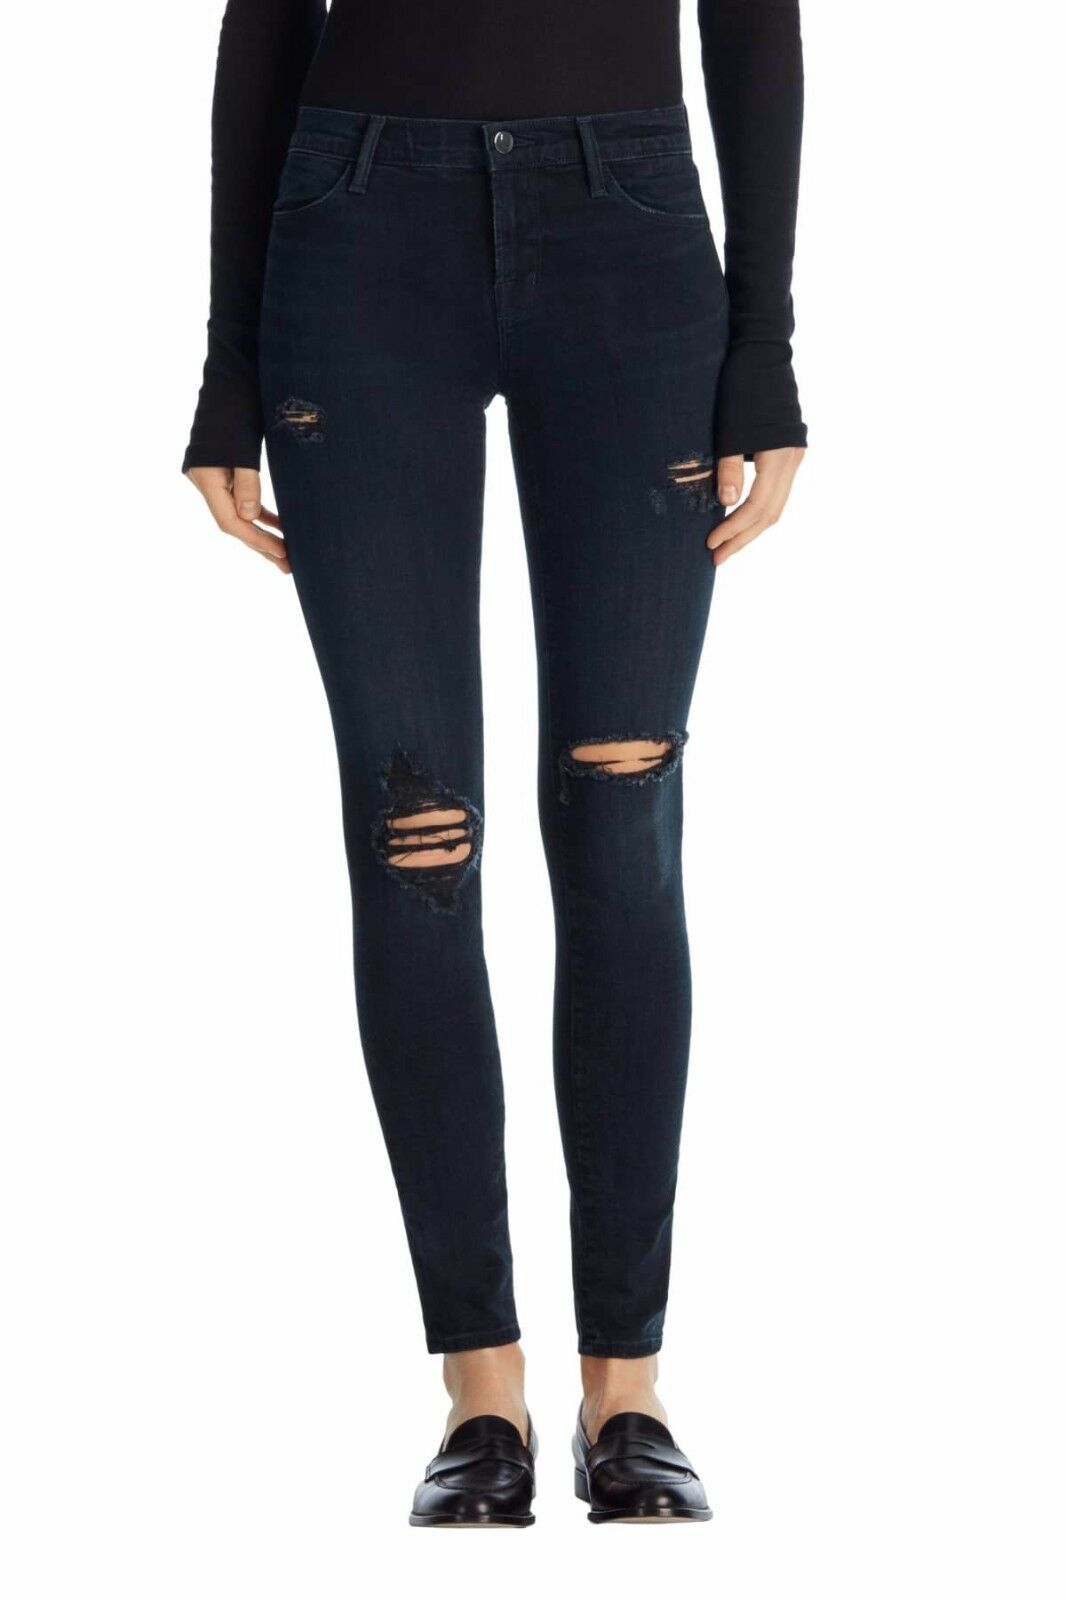 NWT J Brand Maria High Rise Skinny Destructed Sanctity(Dark Navy) 24,25